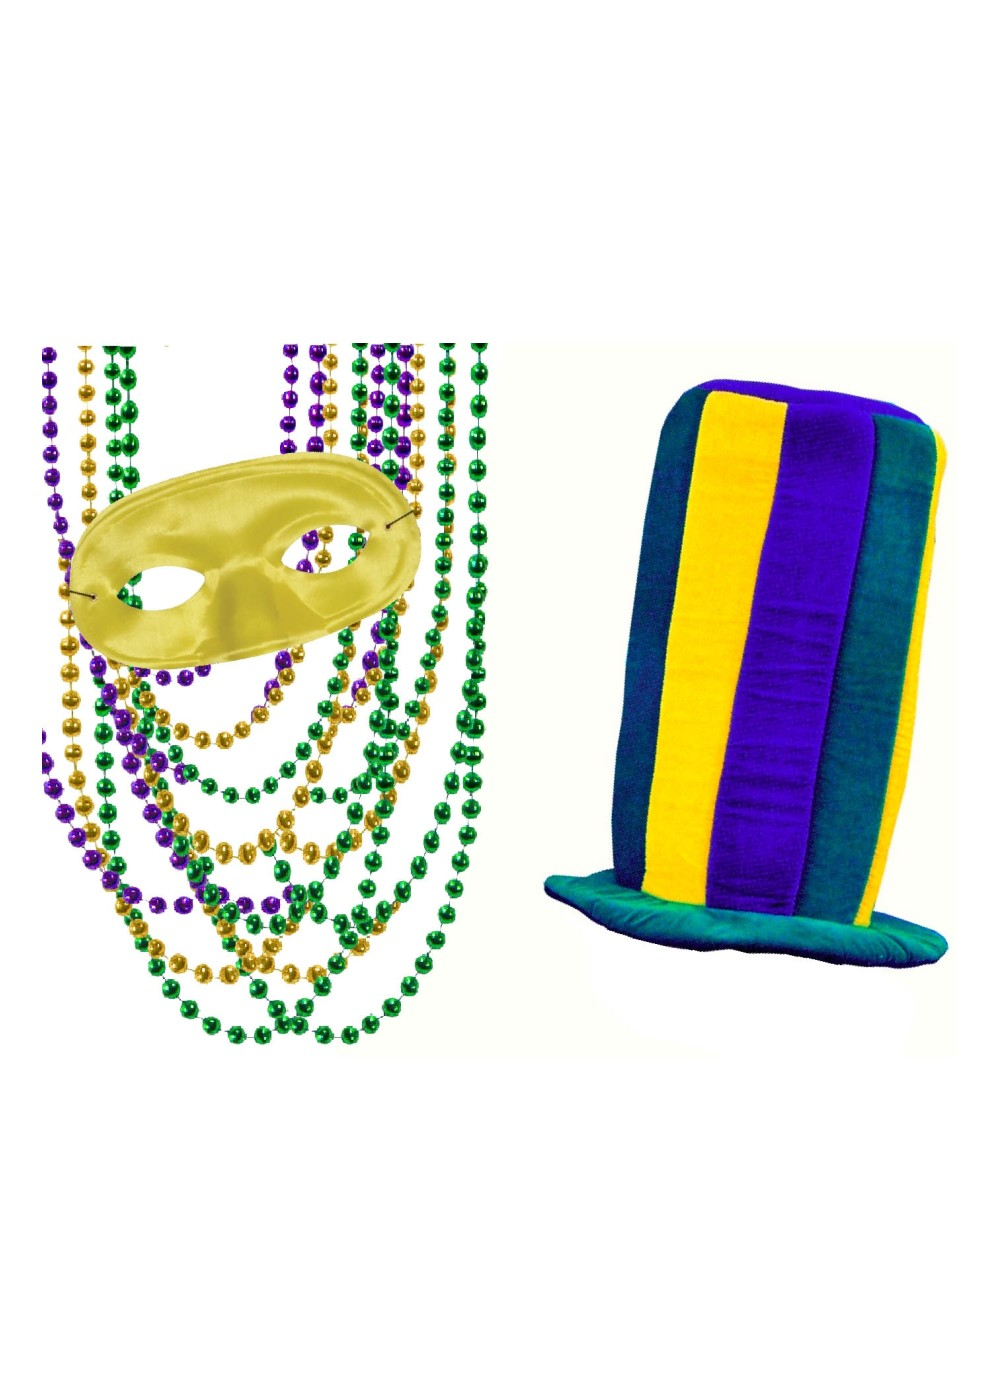 The Ultimate Mardi Gras Kit